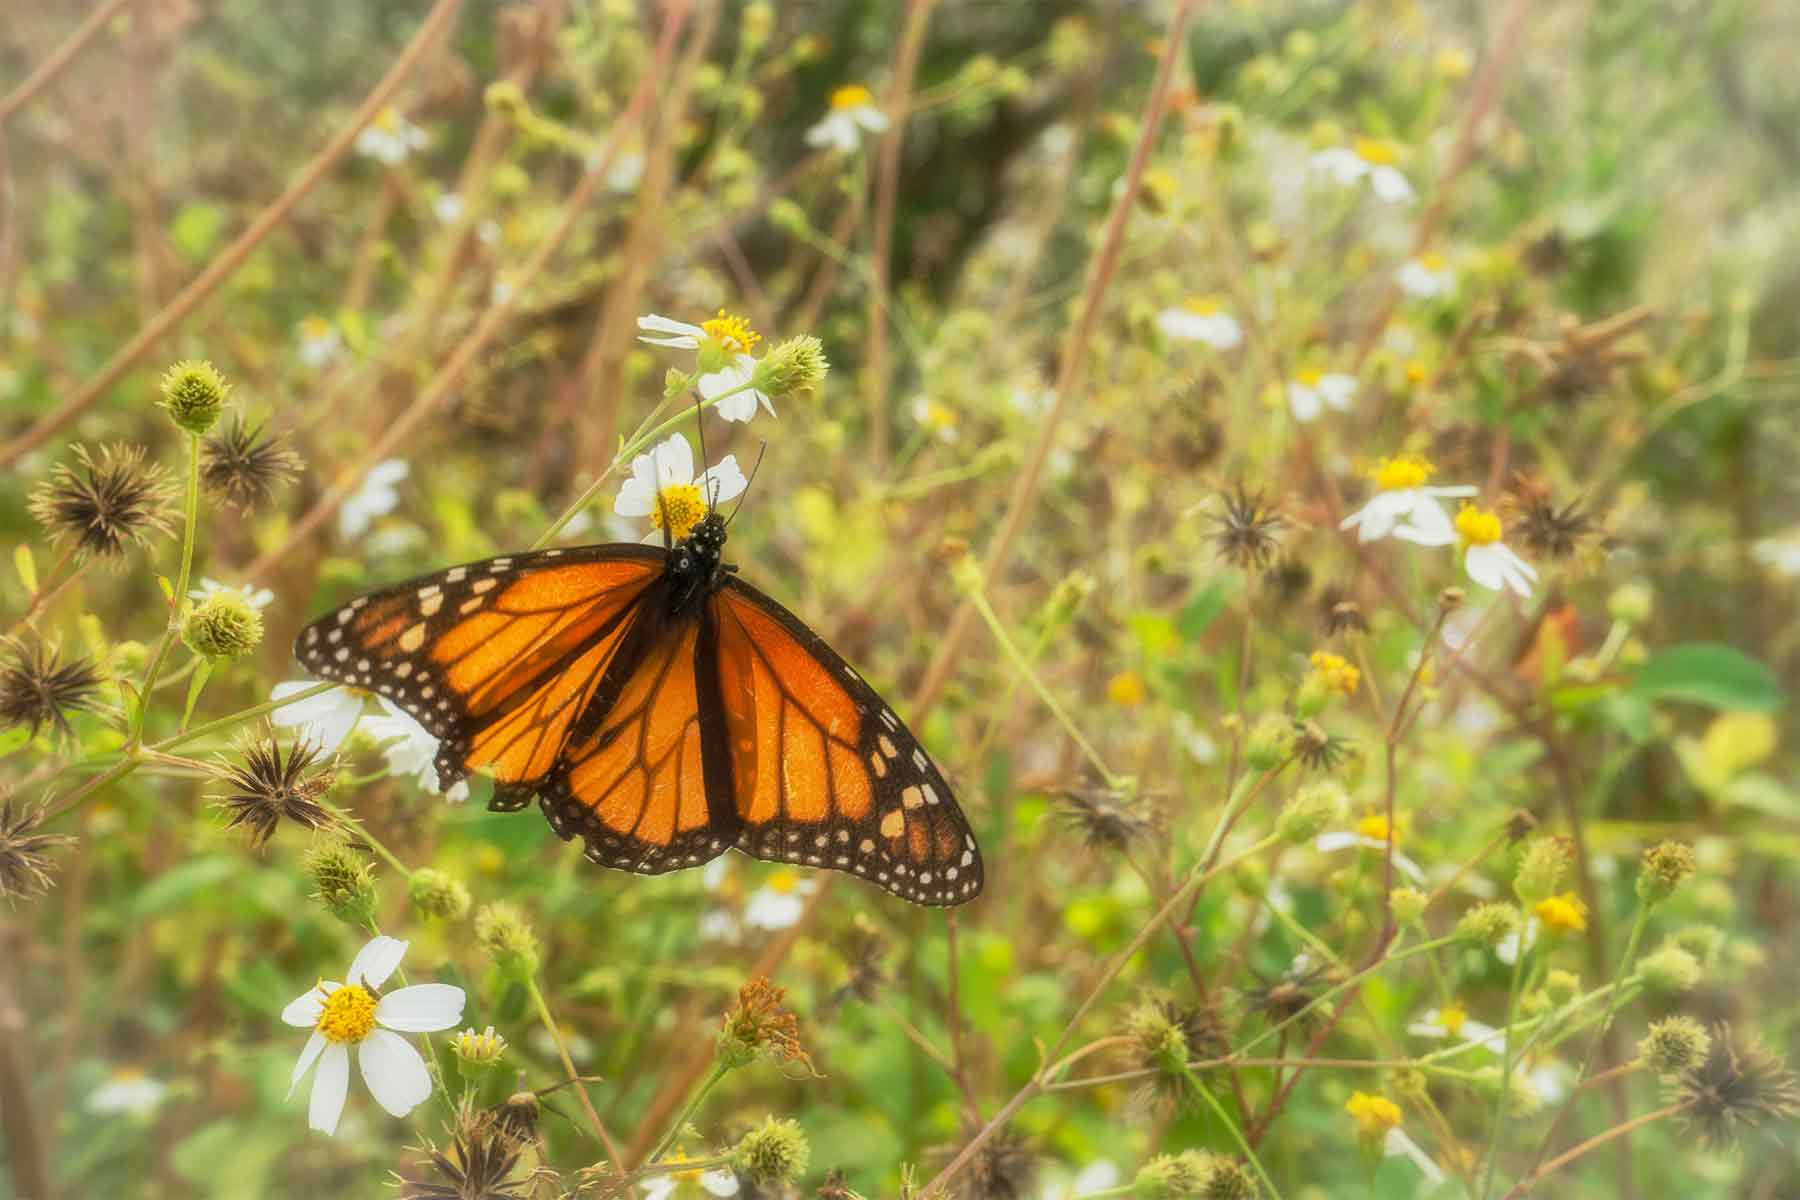 ic: Monarch butterfly on wildflower at St. Marks National Wildlife Refuge in Florida